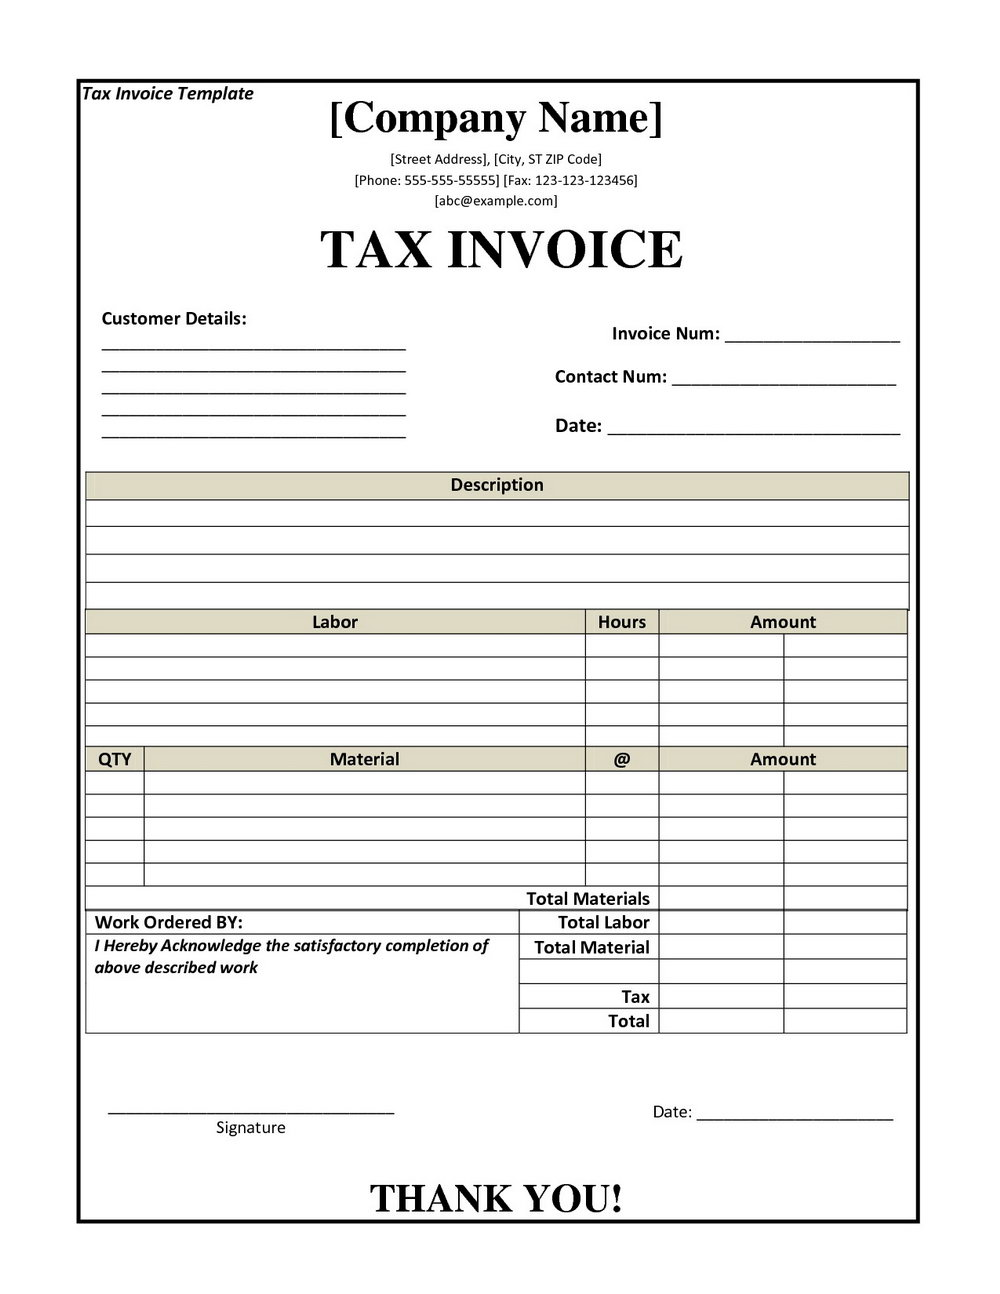 Editable Tax Invoice Template